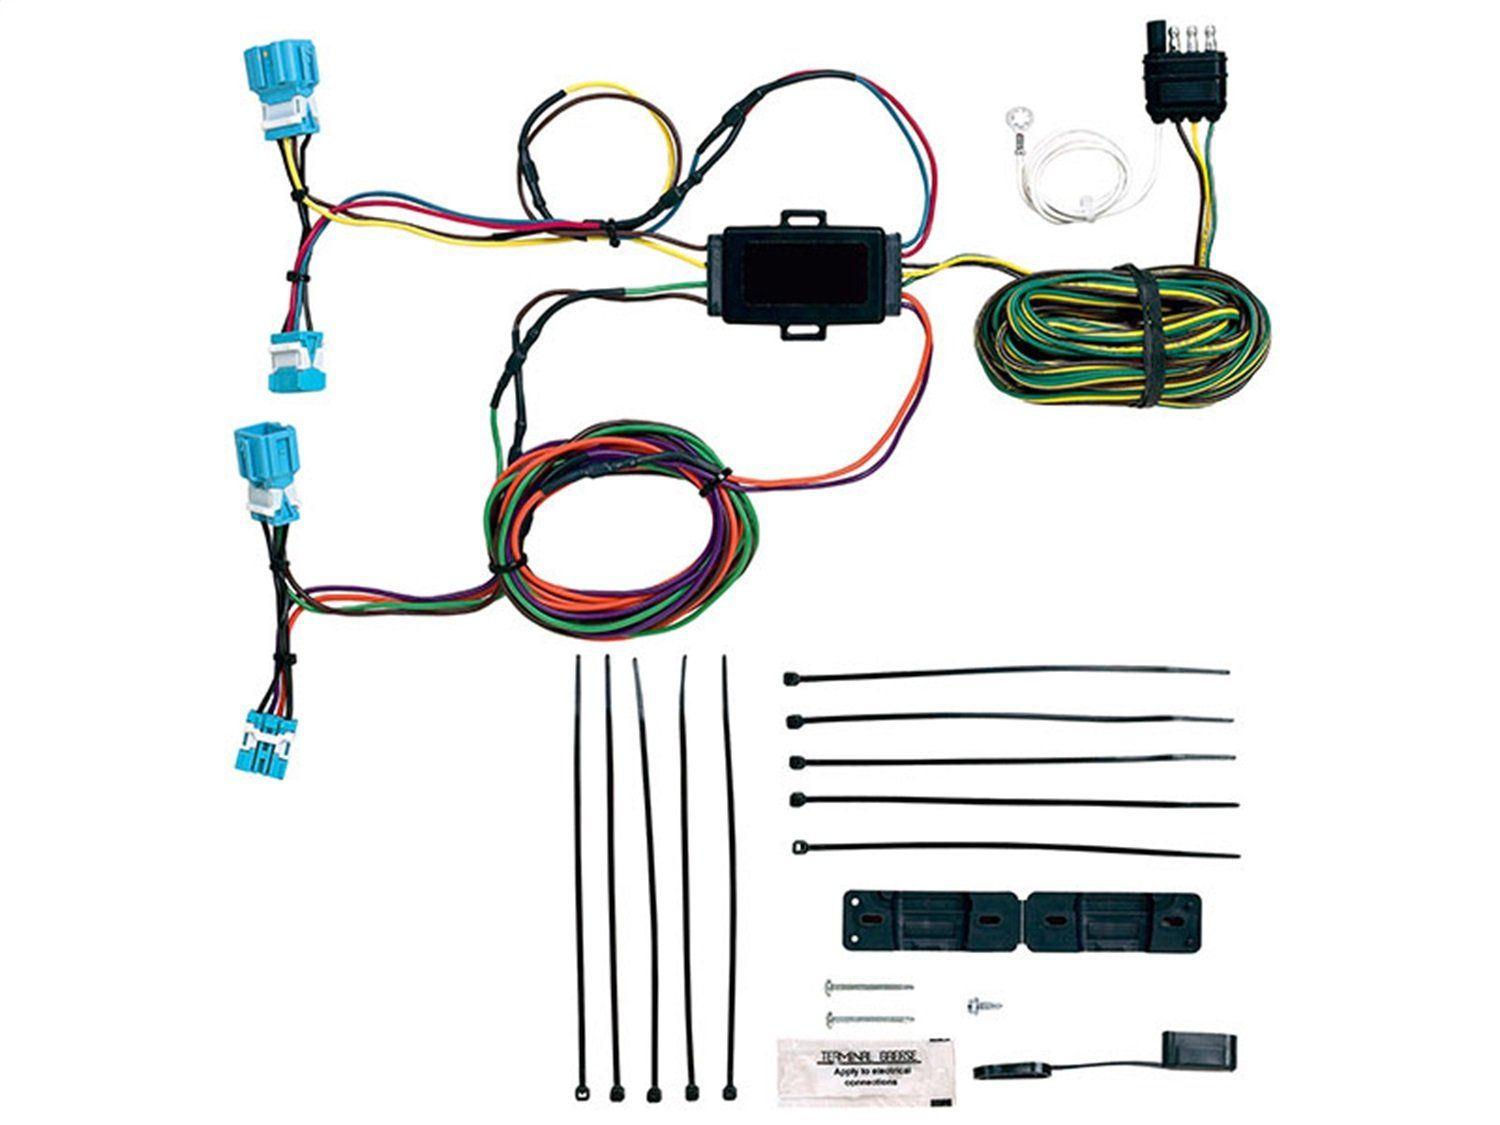 Blue Ox Bx88281 Ez Light Wiring Harness Kit For Honda Cr V Read More At The Image Link This Is An Affiliate Link Automotivelightin Honda Cr Honda Harness